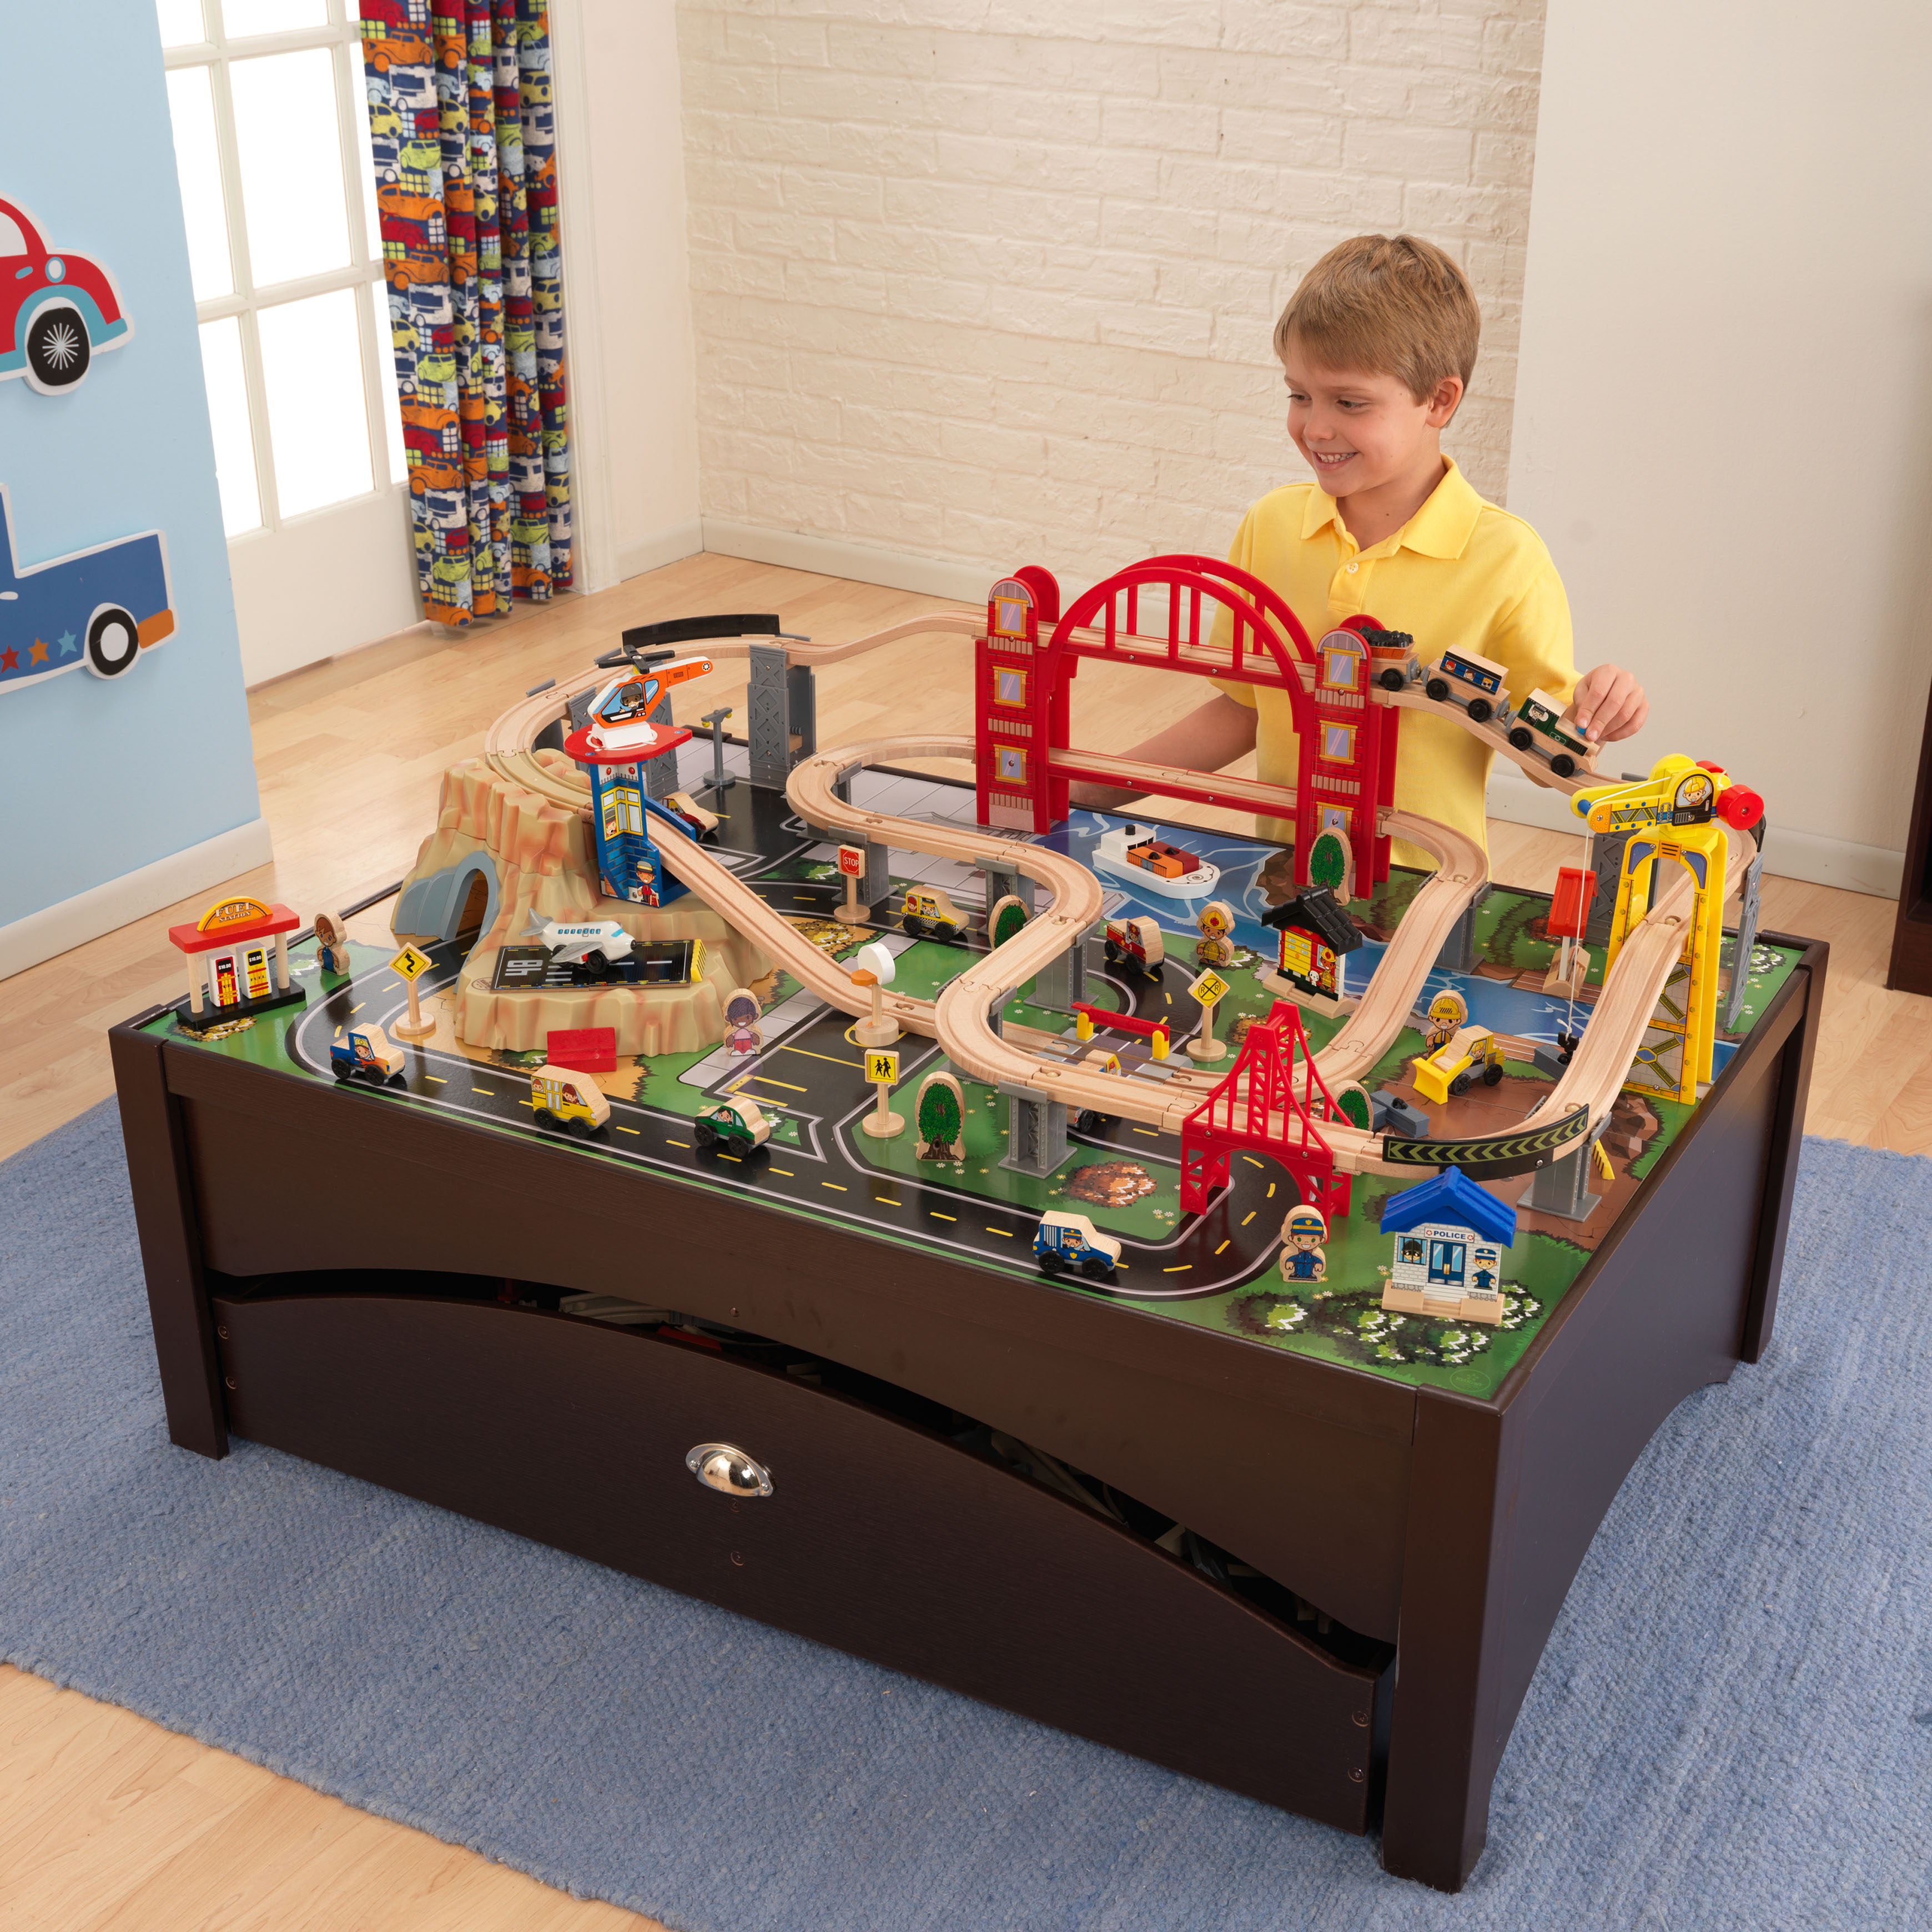 KidKraft Metropolis Train Set & Table with 100 accessories included